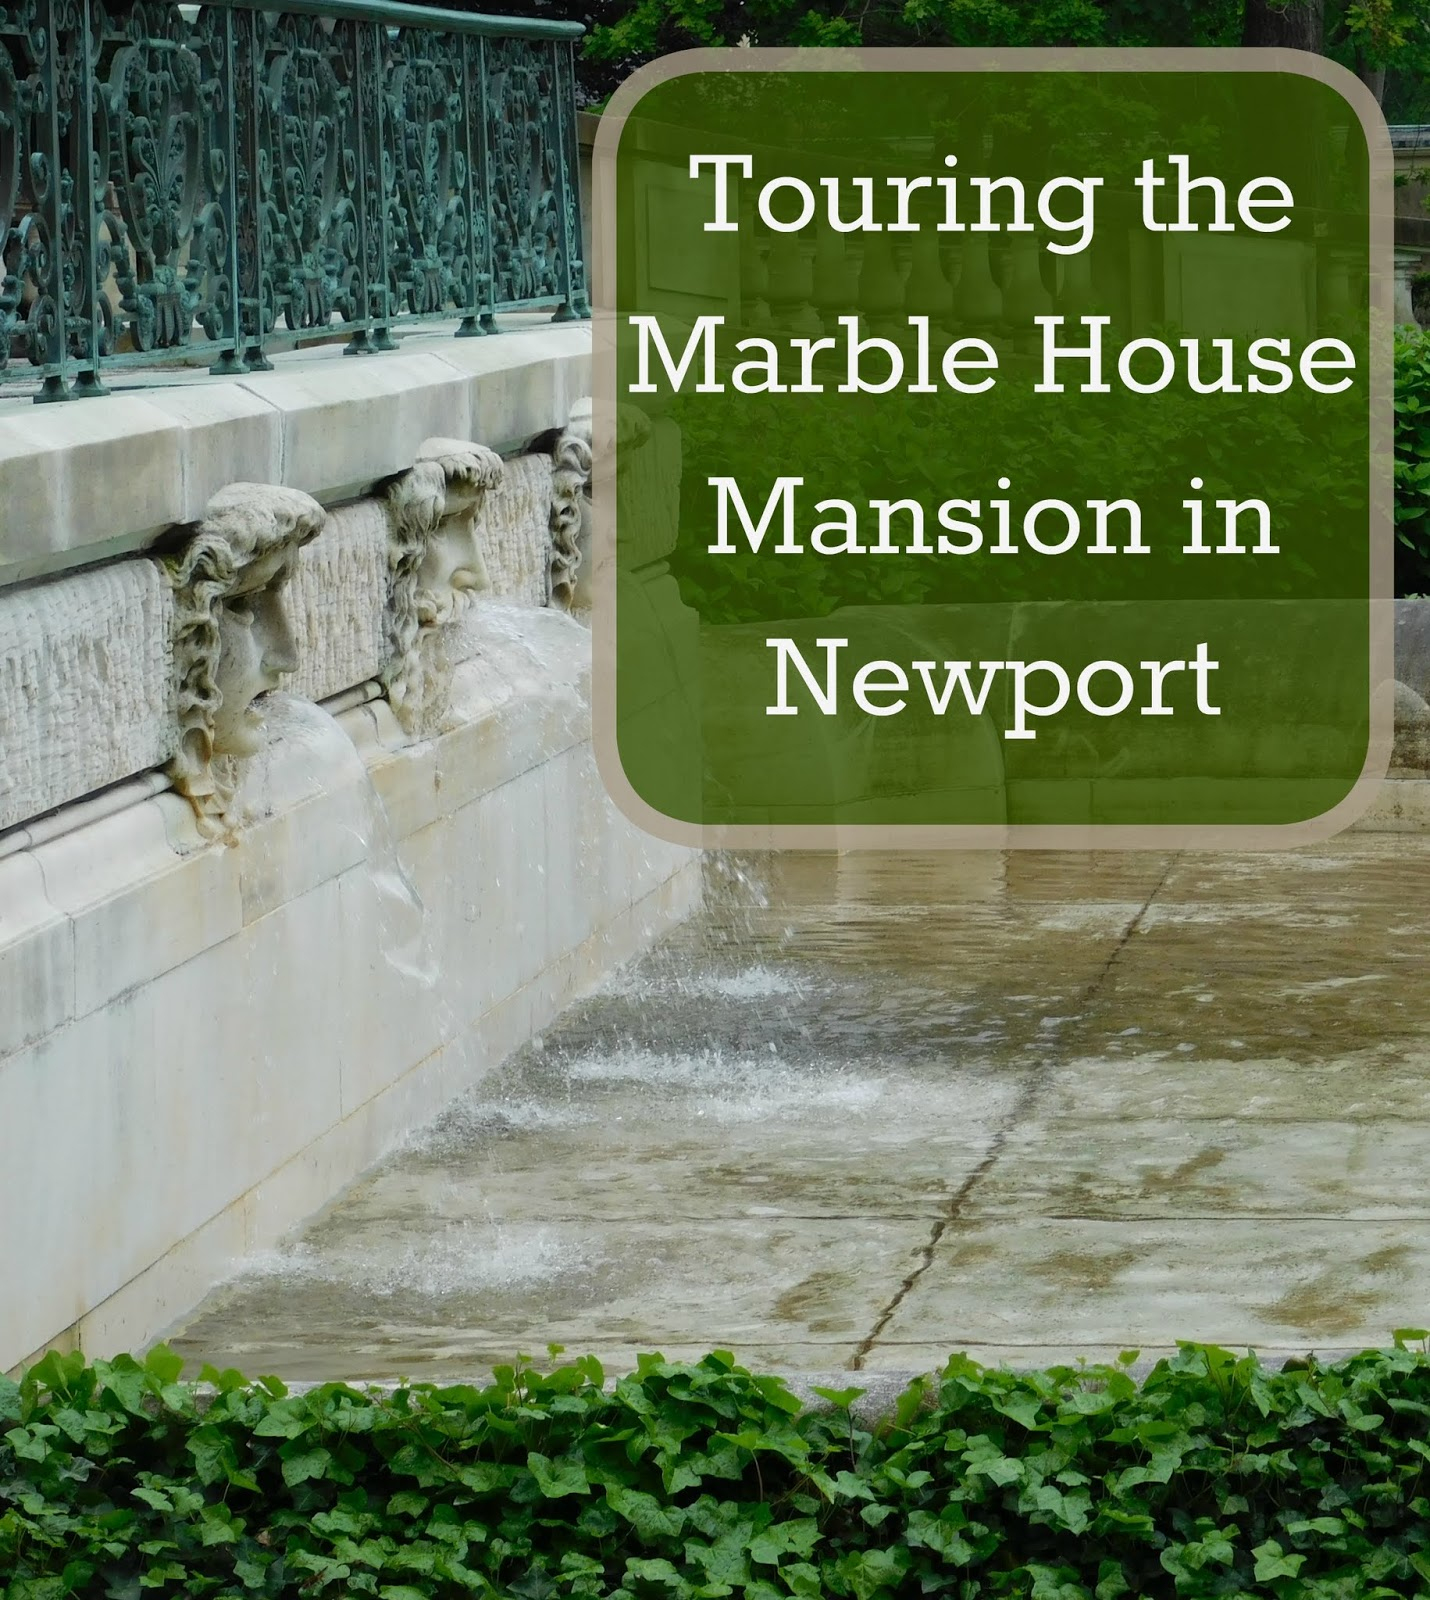 our unschooling journey through life: touring a newport mansion!